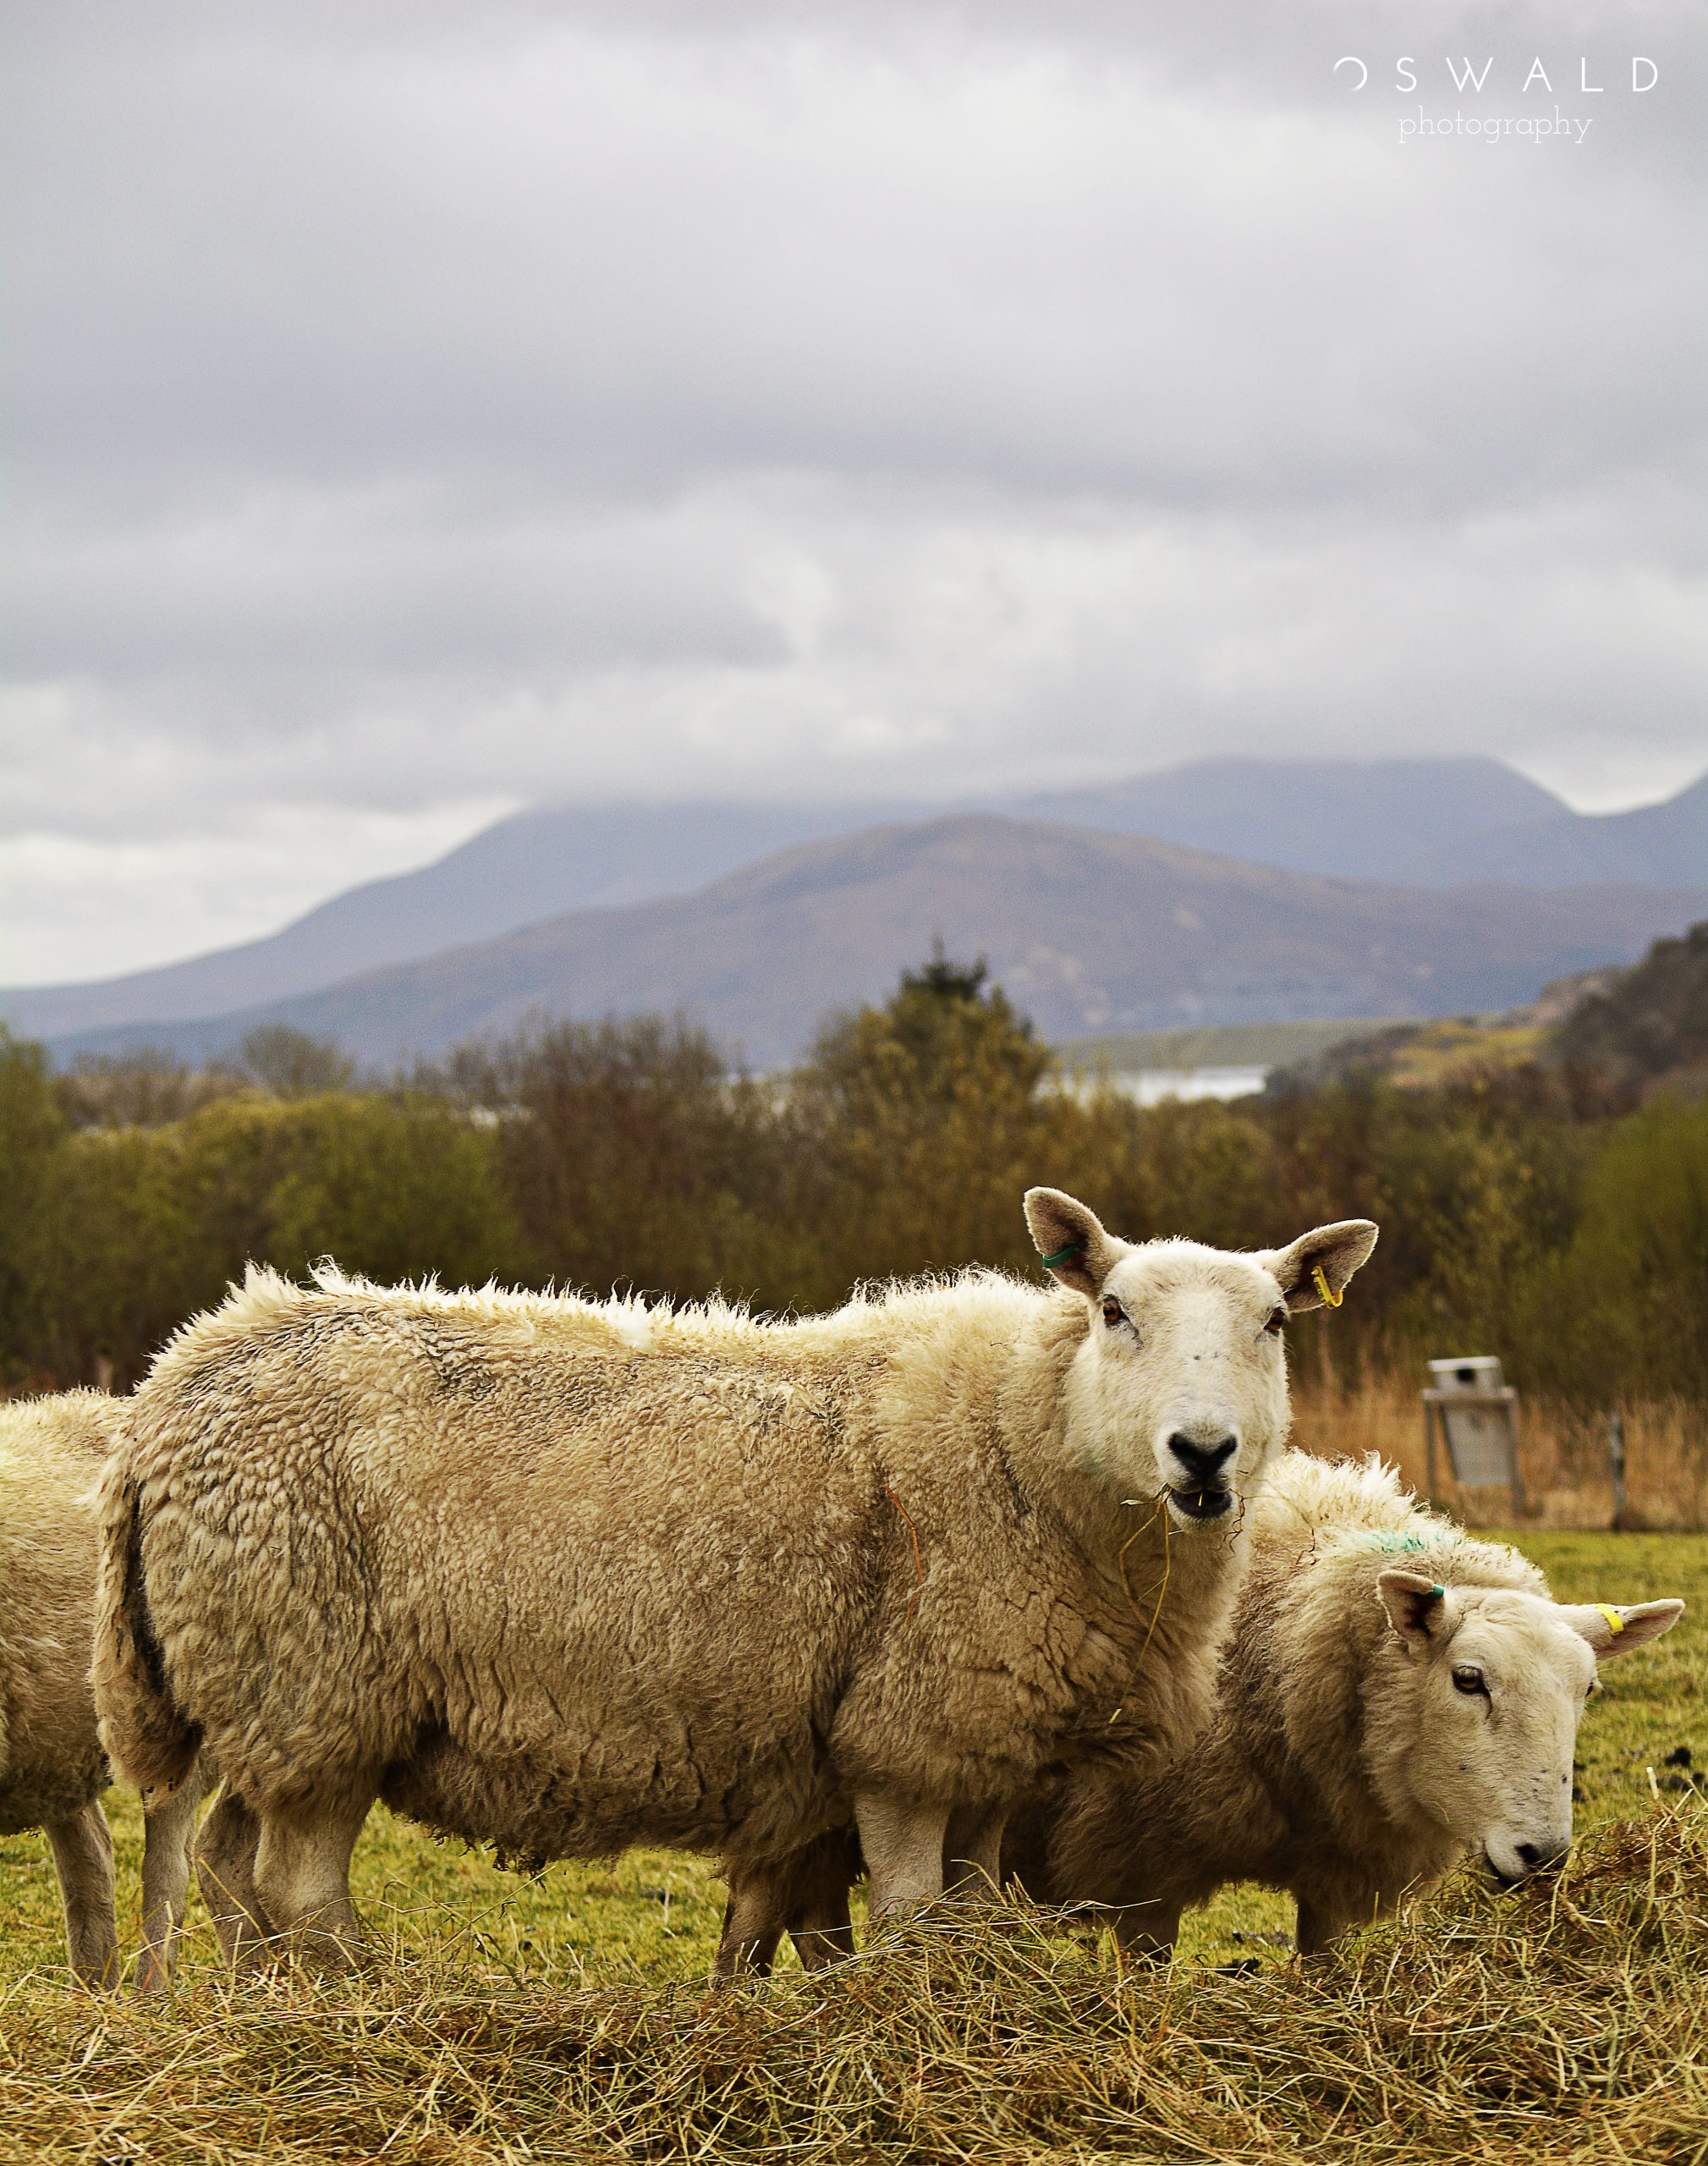 Photography of two sheep chewing on alfalfa in a lush field on the Isle of Skye, Scotland with a dramatic background